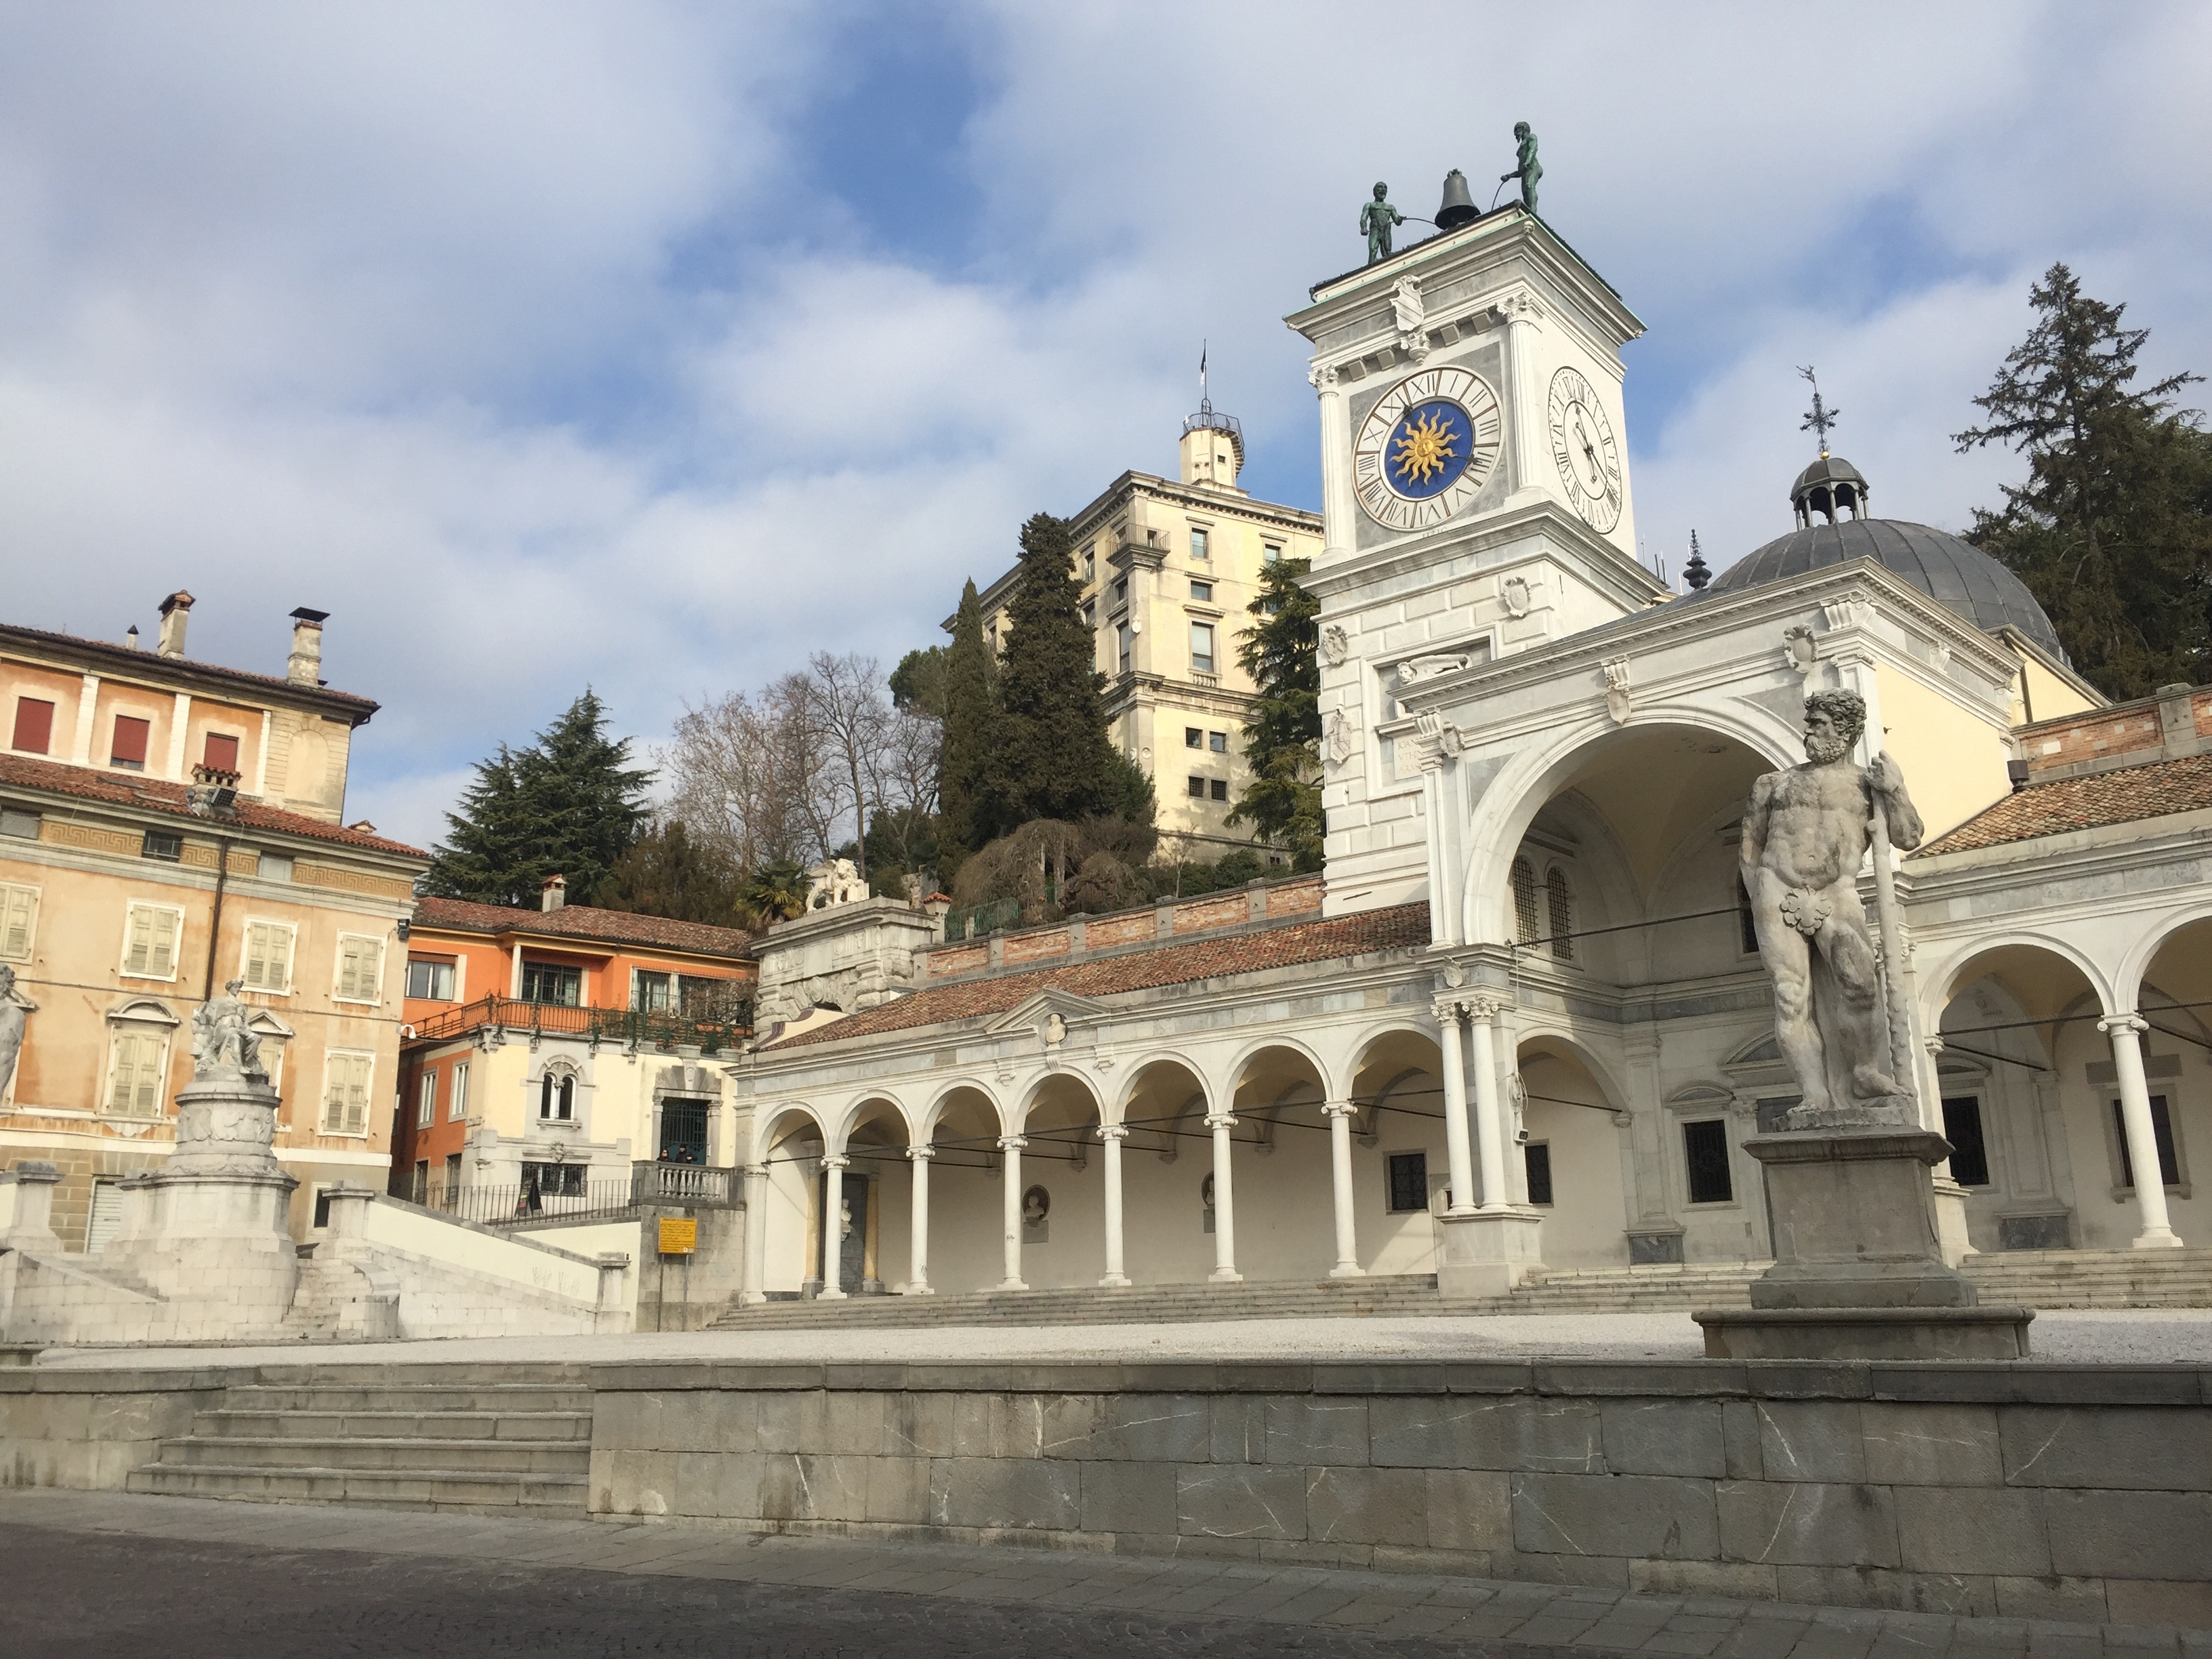 gids, rondleiding in Udine